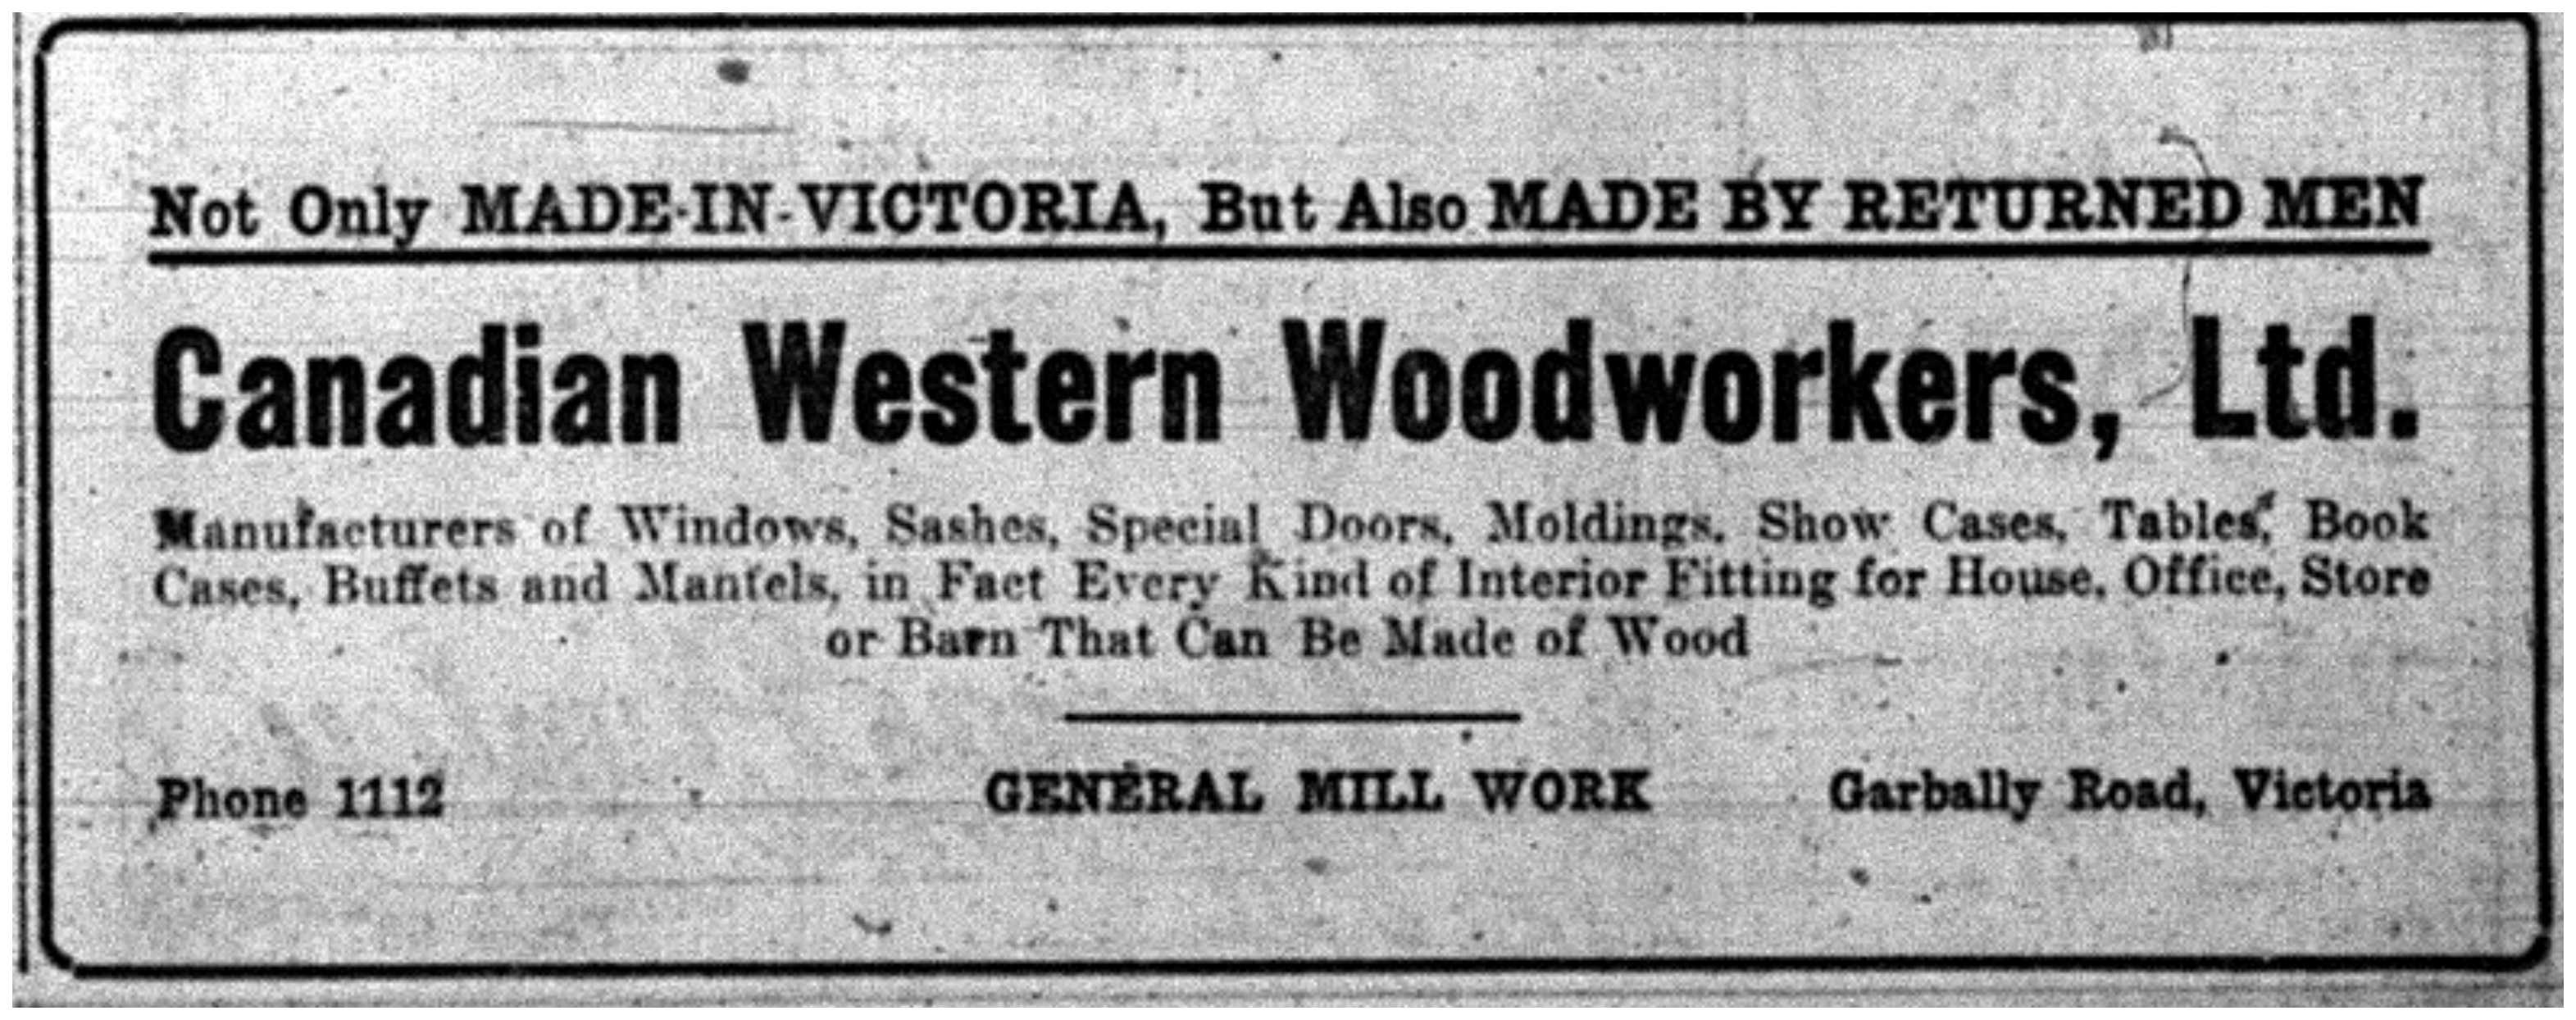 """Not Only Made-in-Victoria, But Also Made by Returned Men"""